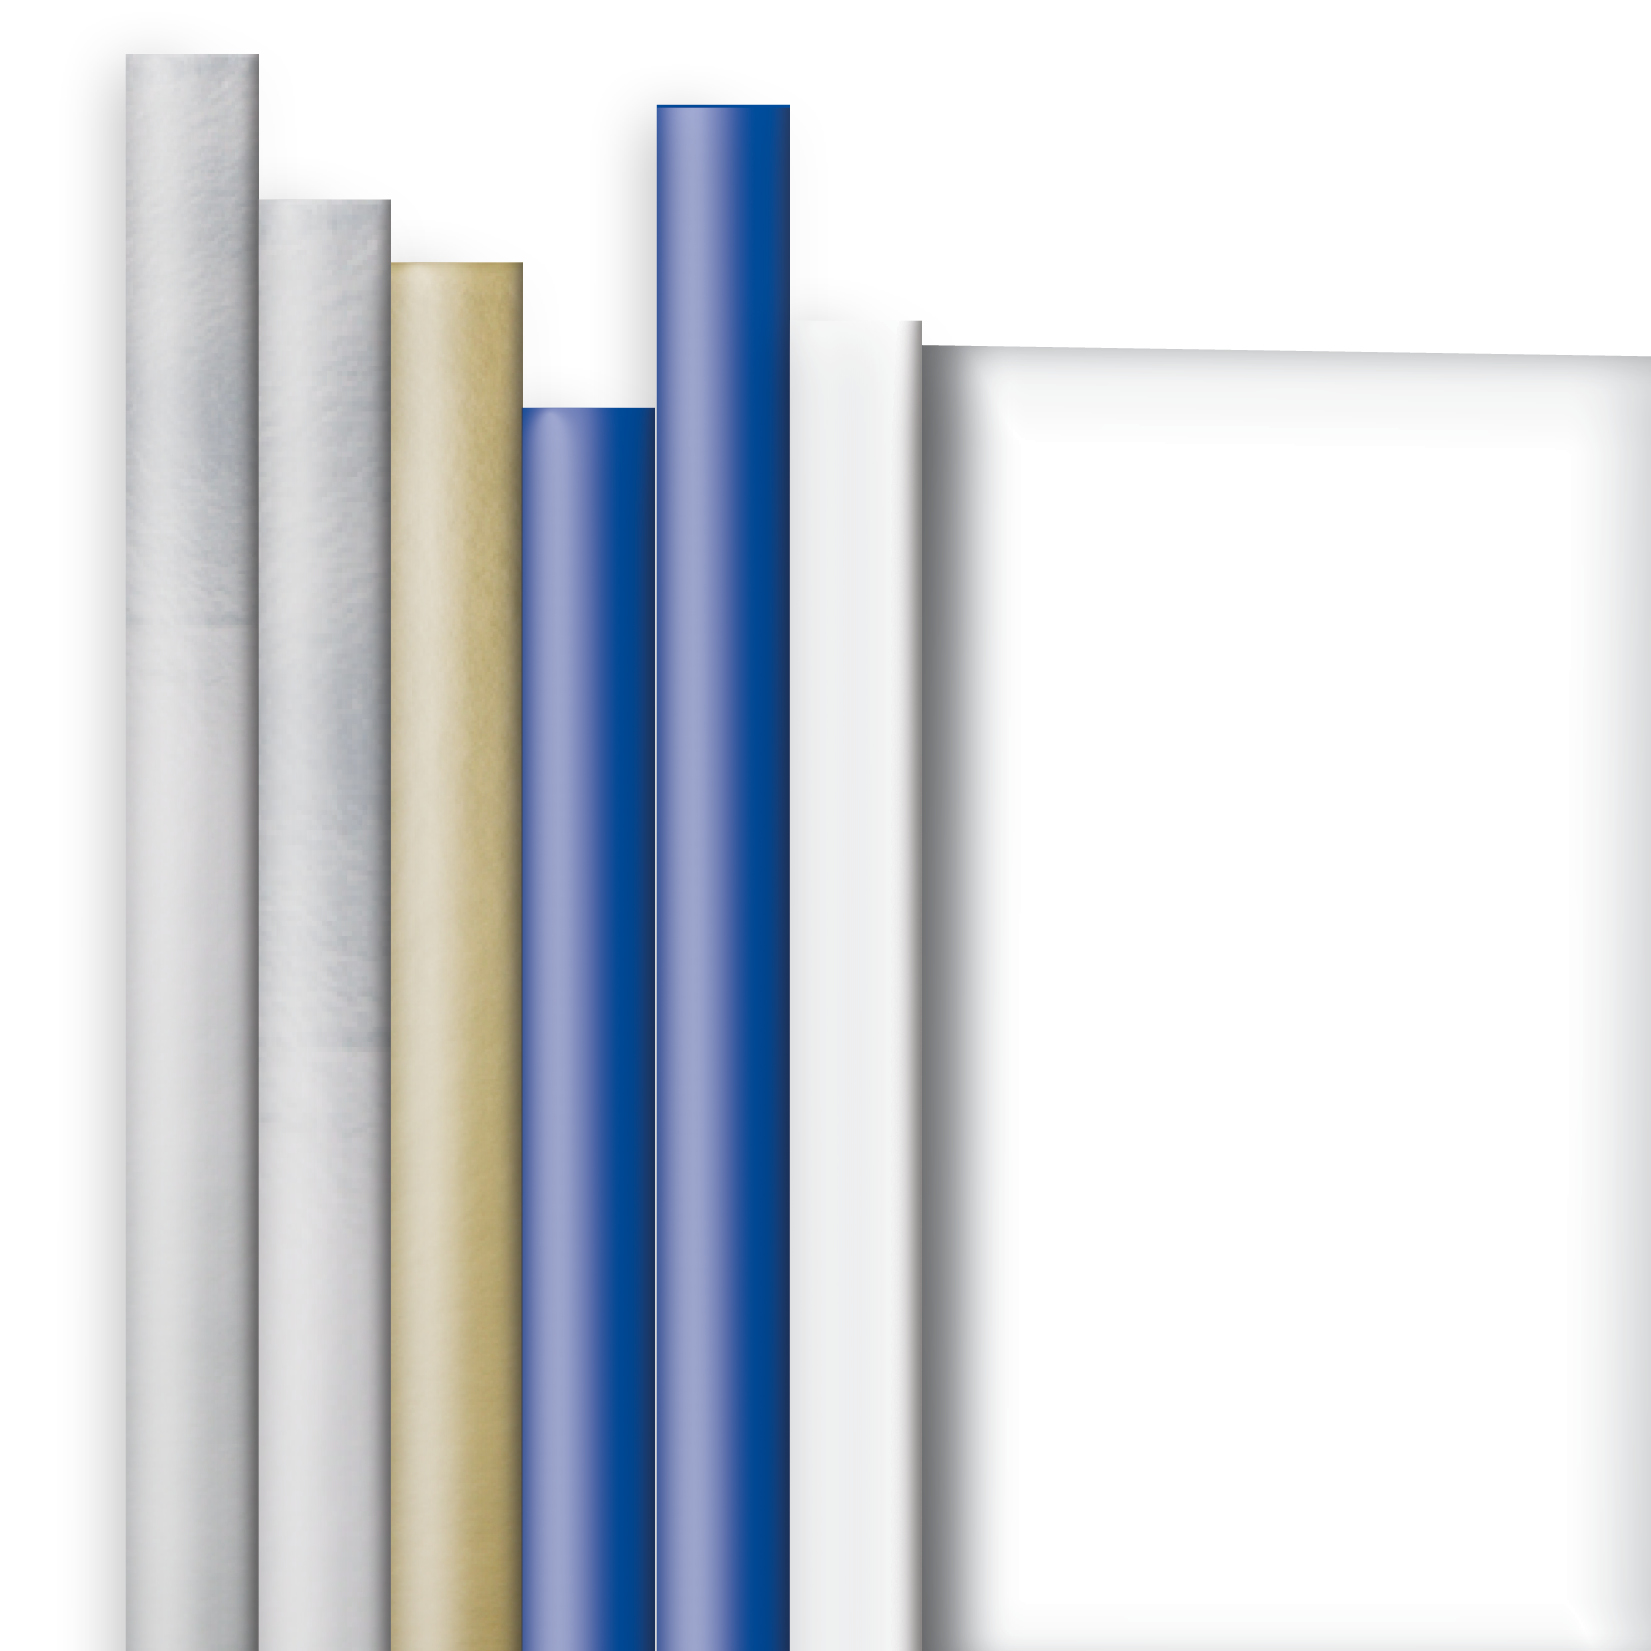 Jillson & Roberts Solid Color Matte Gift Wrap Roll Assortment, Hanukkah (6 Rolls)